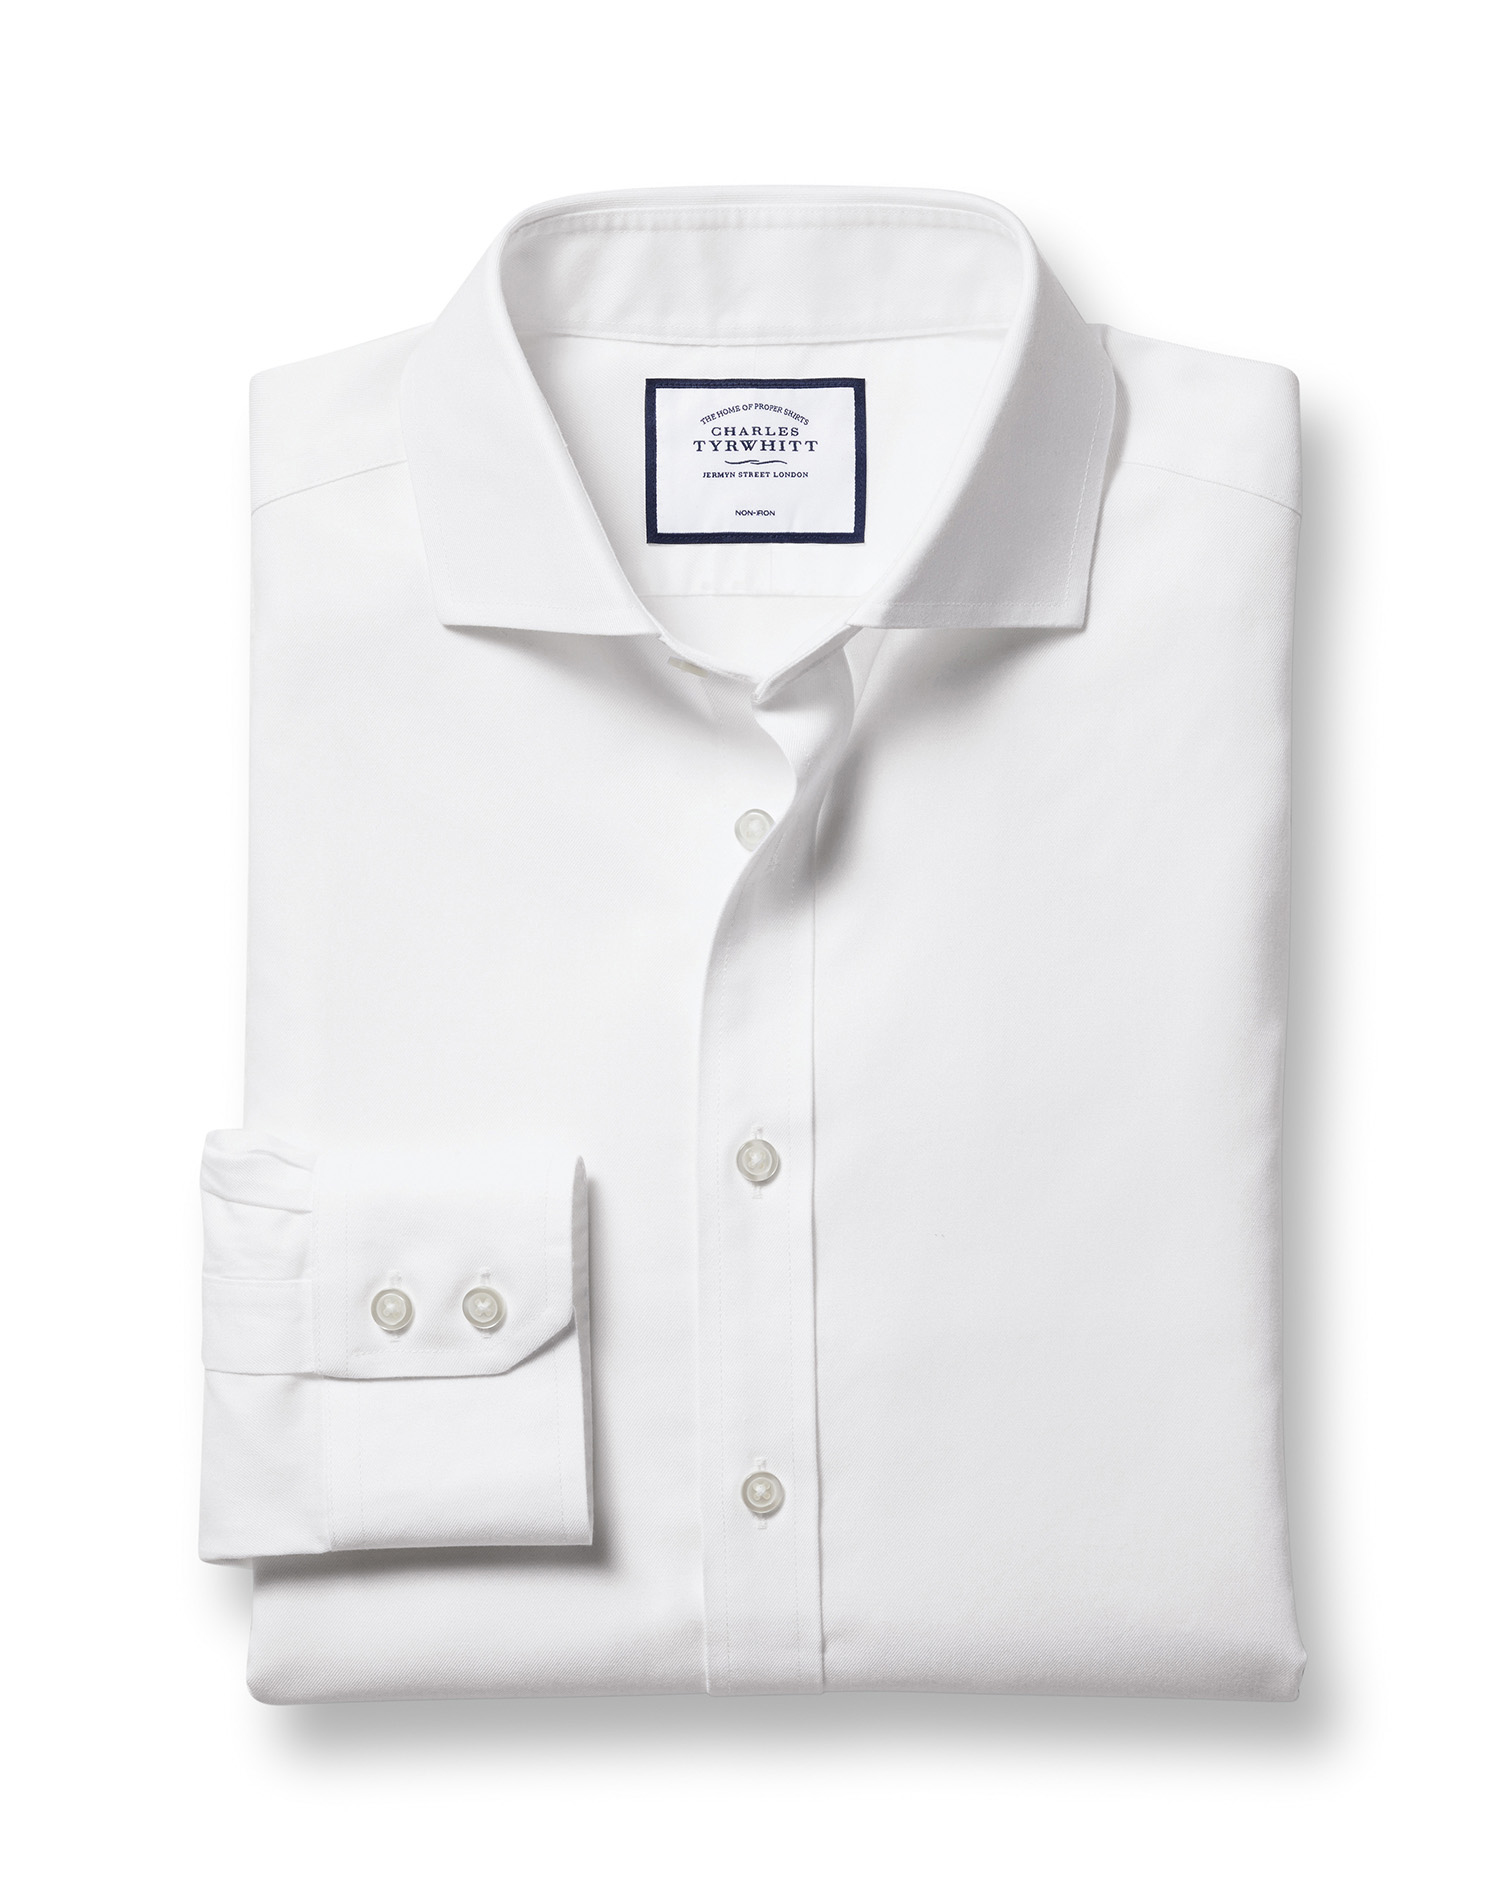 Slim Fit Cutaway Non-Iron Twill White Cotton Formal Shirt Double Cuff Size 16.5/36 by Charles Tyrwhi